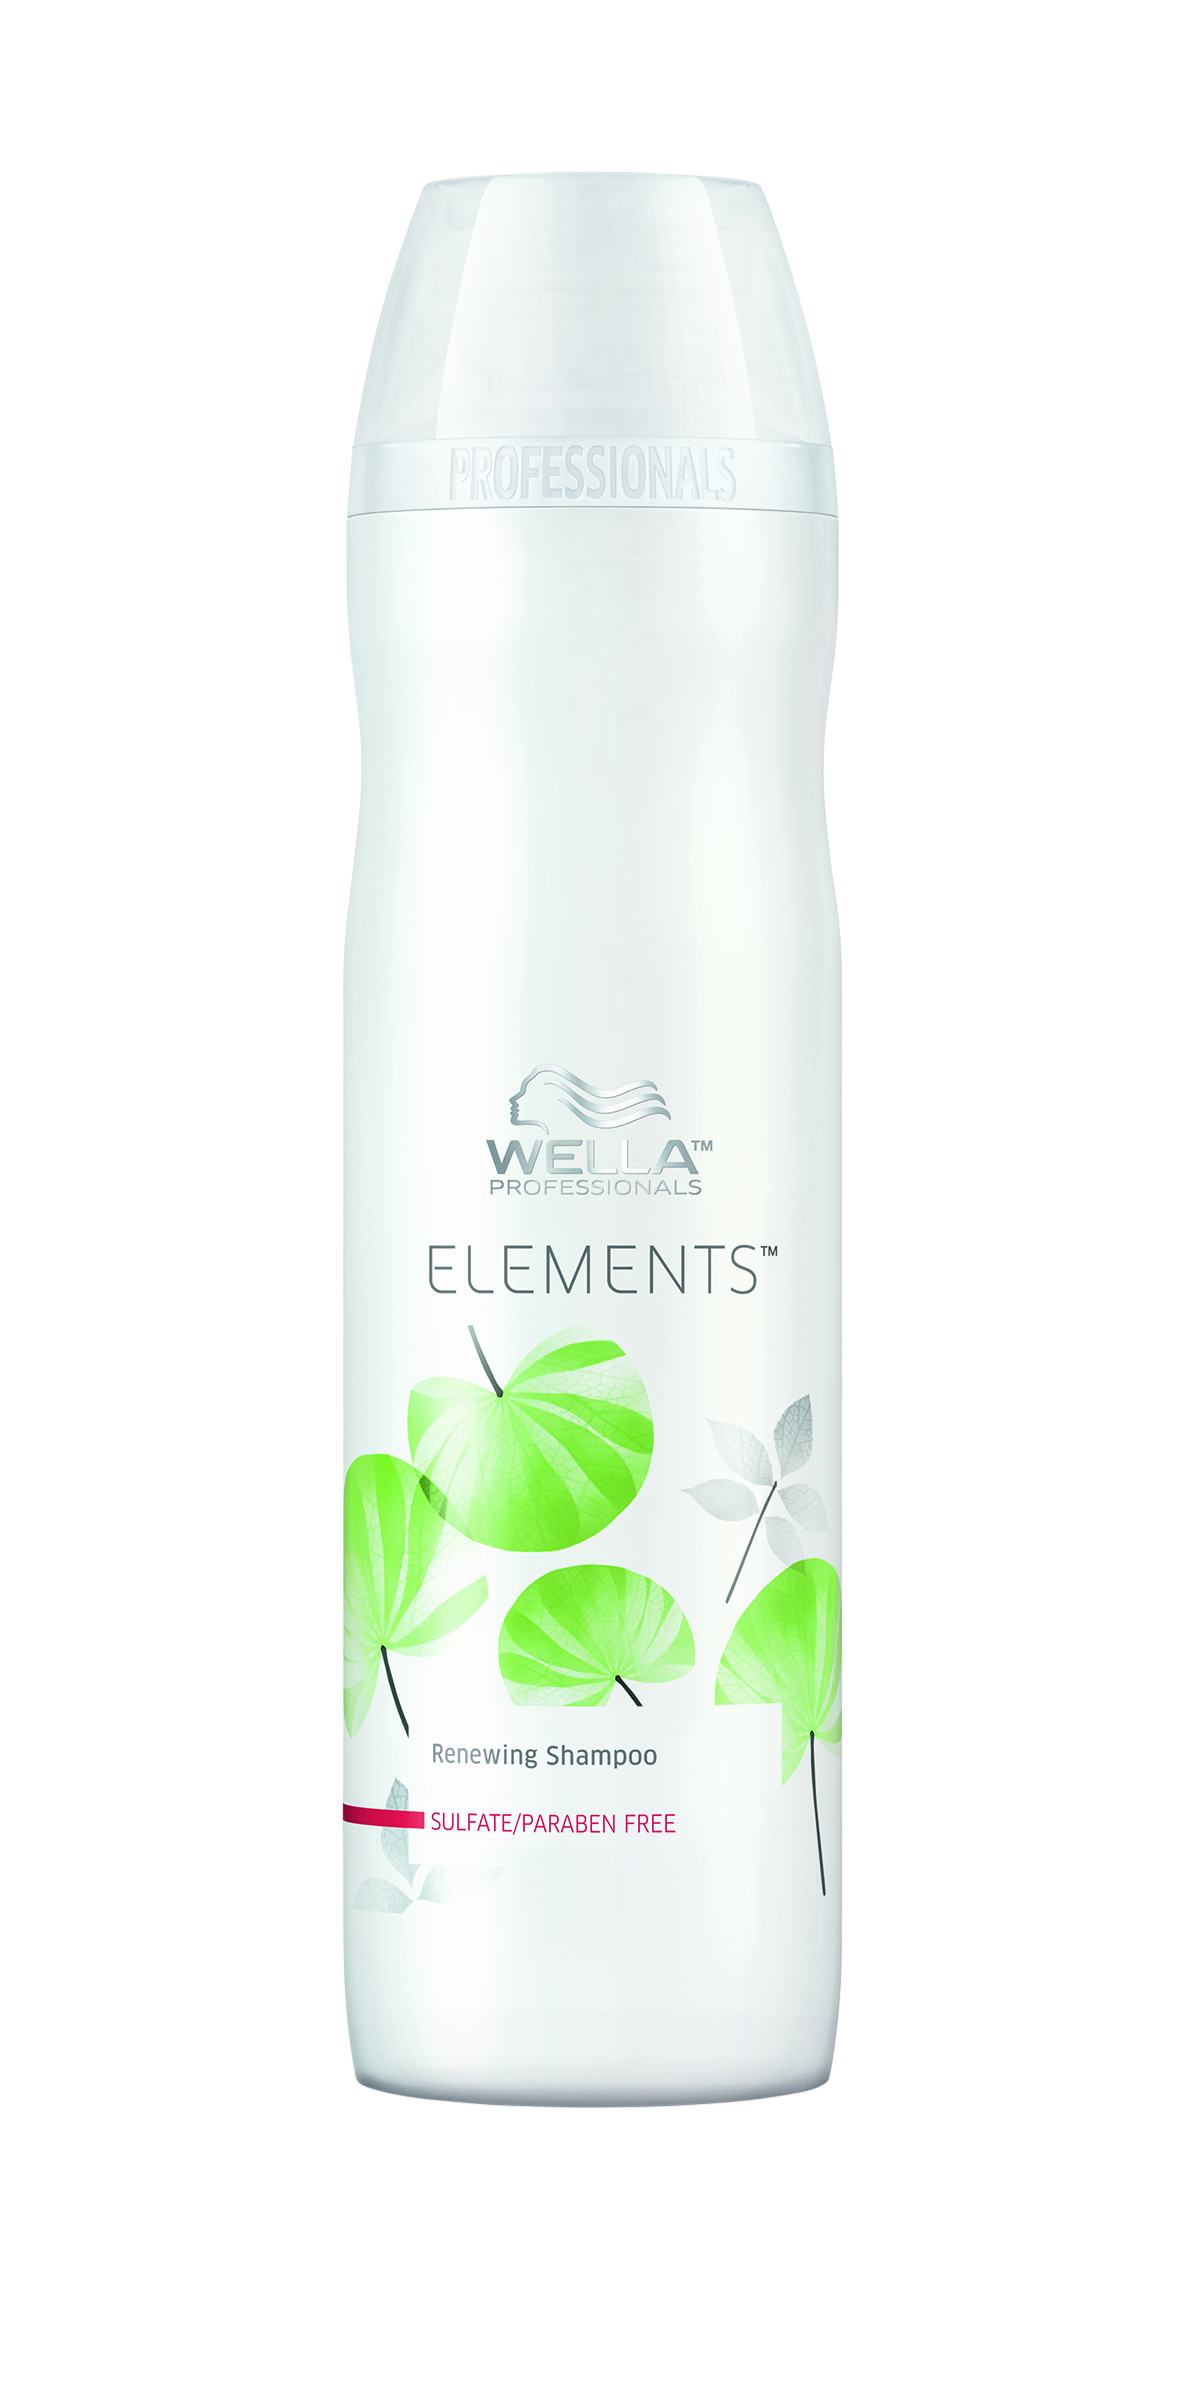 Wella  Elements Renewing Shampoo is a sulfate-free formula that renews hair's moisture, preserving and renewing it from root to tip.